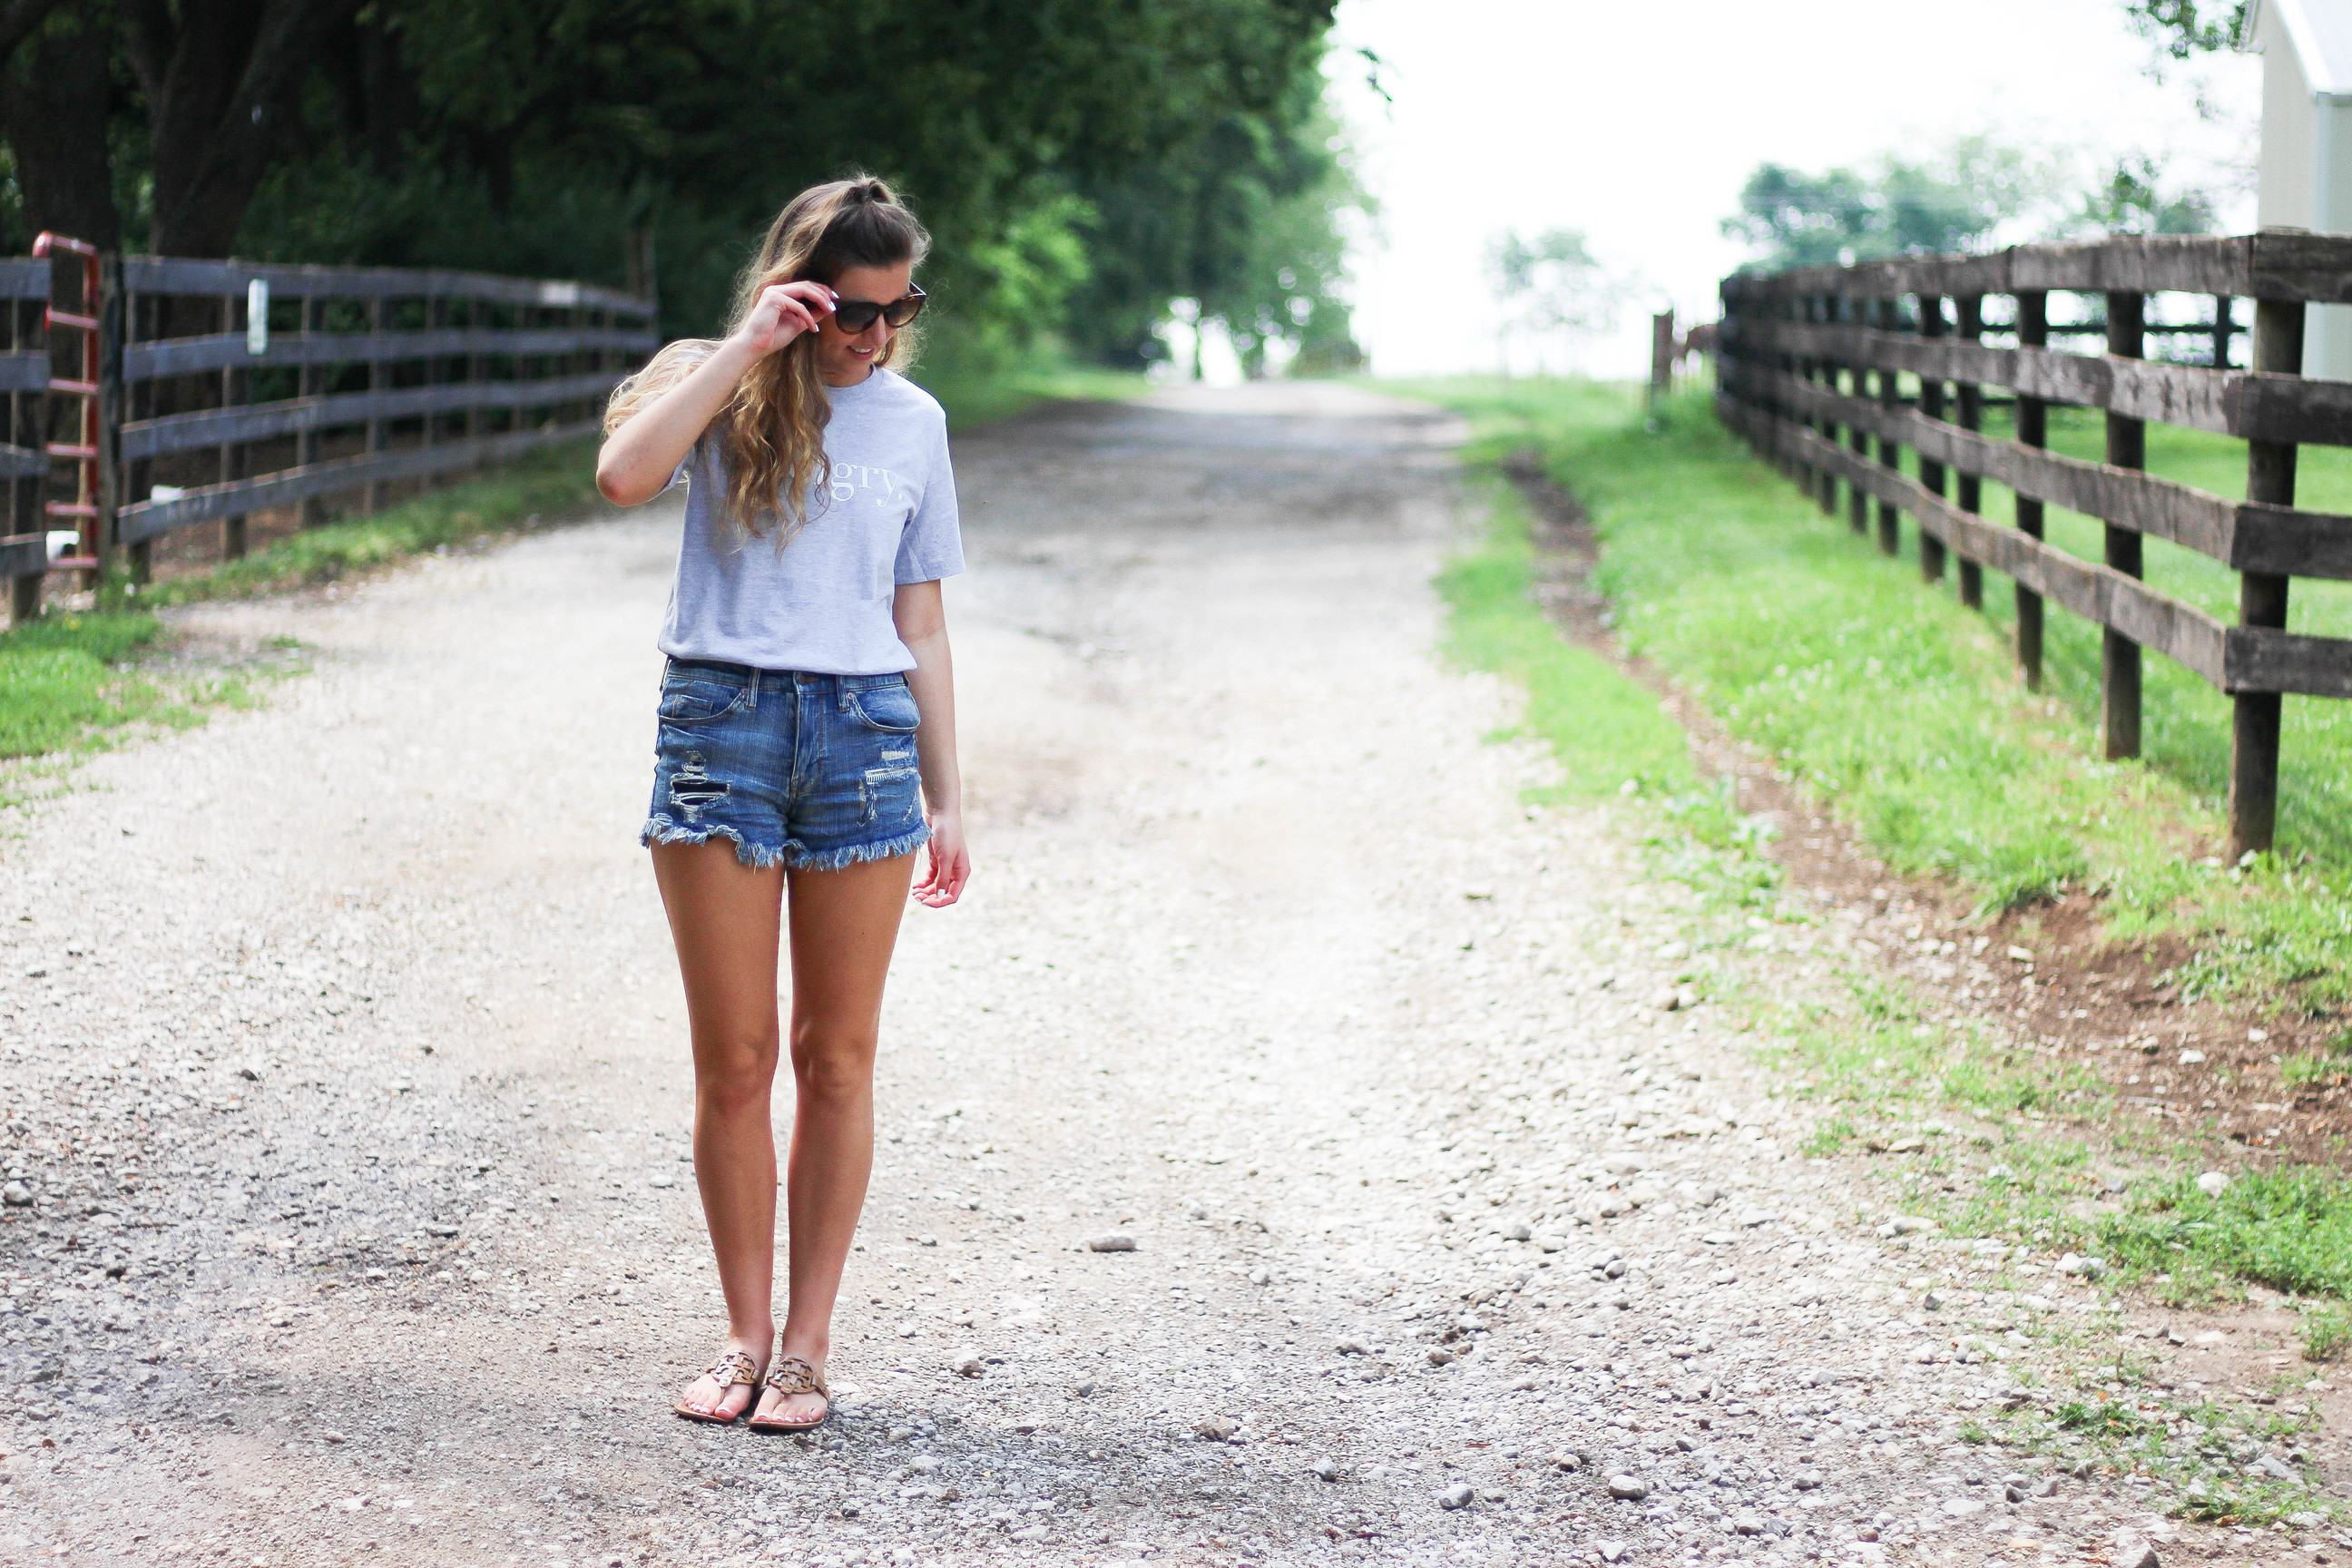 HANGRY t-shirt, jean shorts, OOTD, casual outfit, by Lauren Lindmark on Daily Dose of Charm